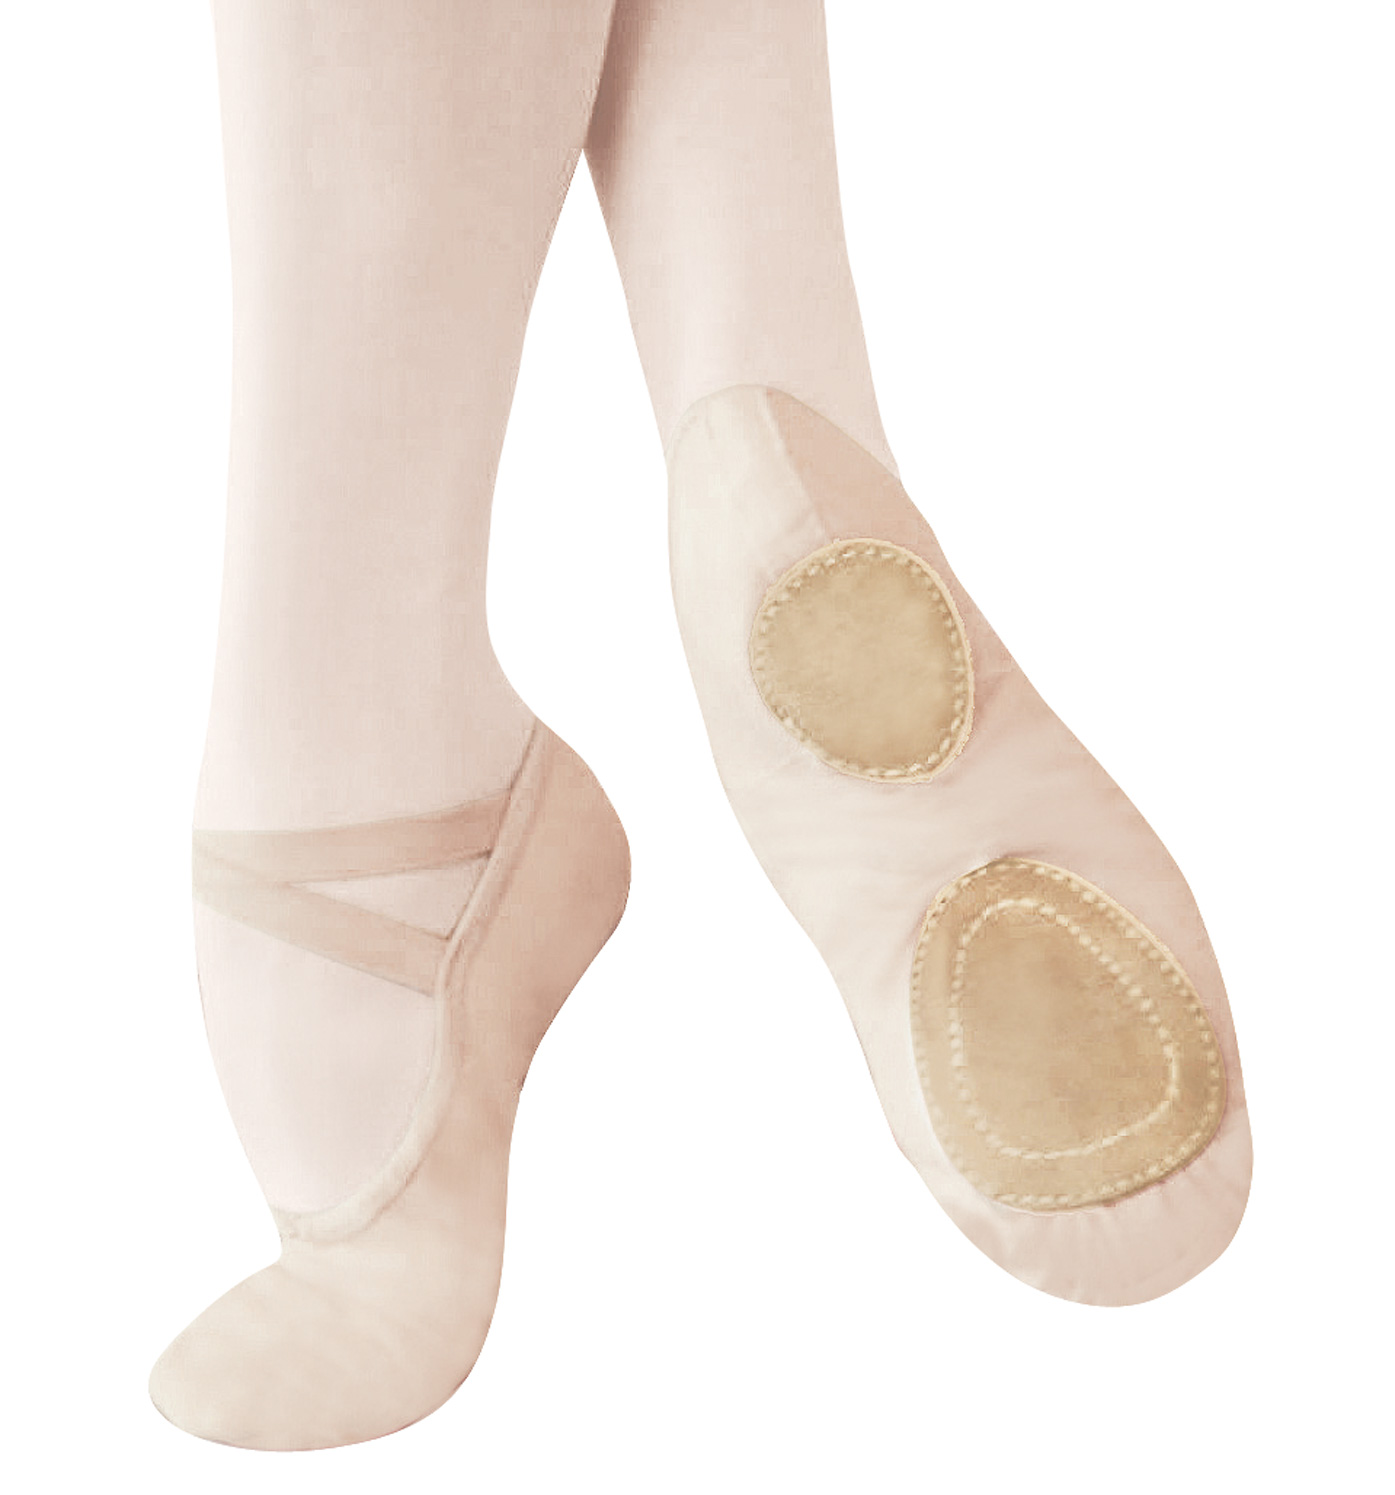 how to clean mdm ballet shoes